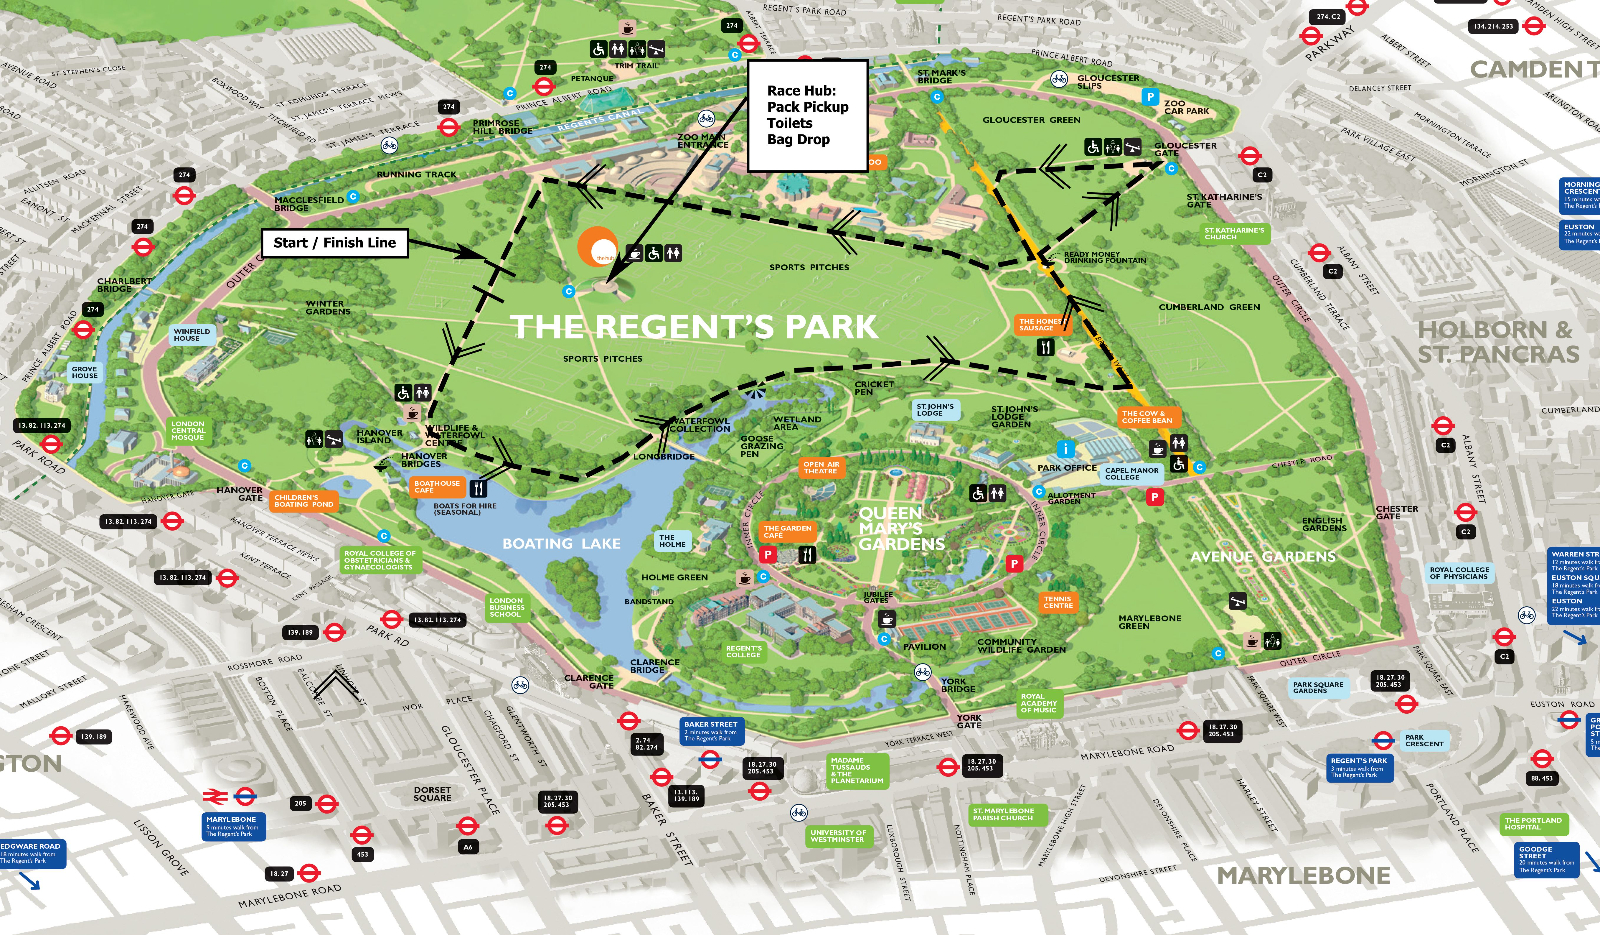 Go Feet Regents Park 10k Royal Parks Winter Series